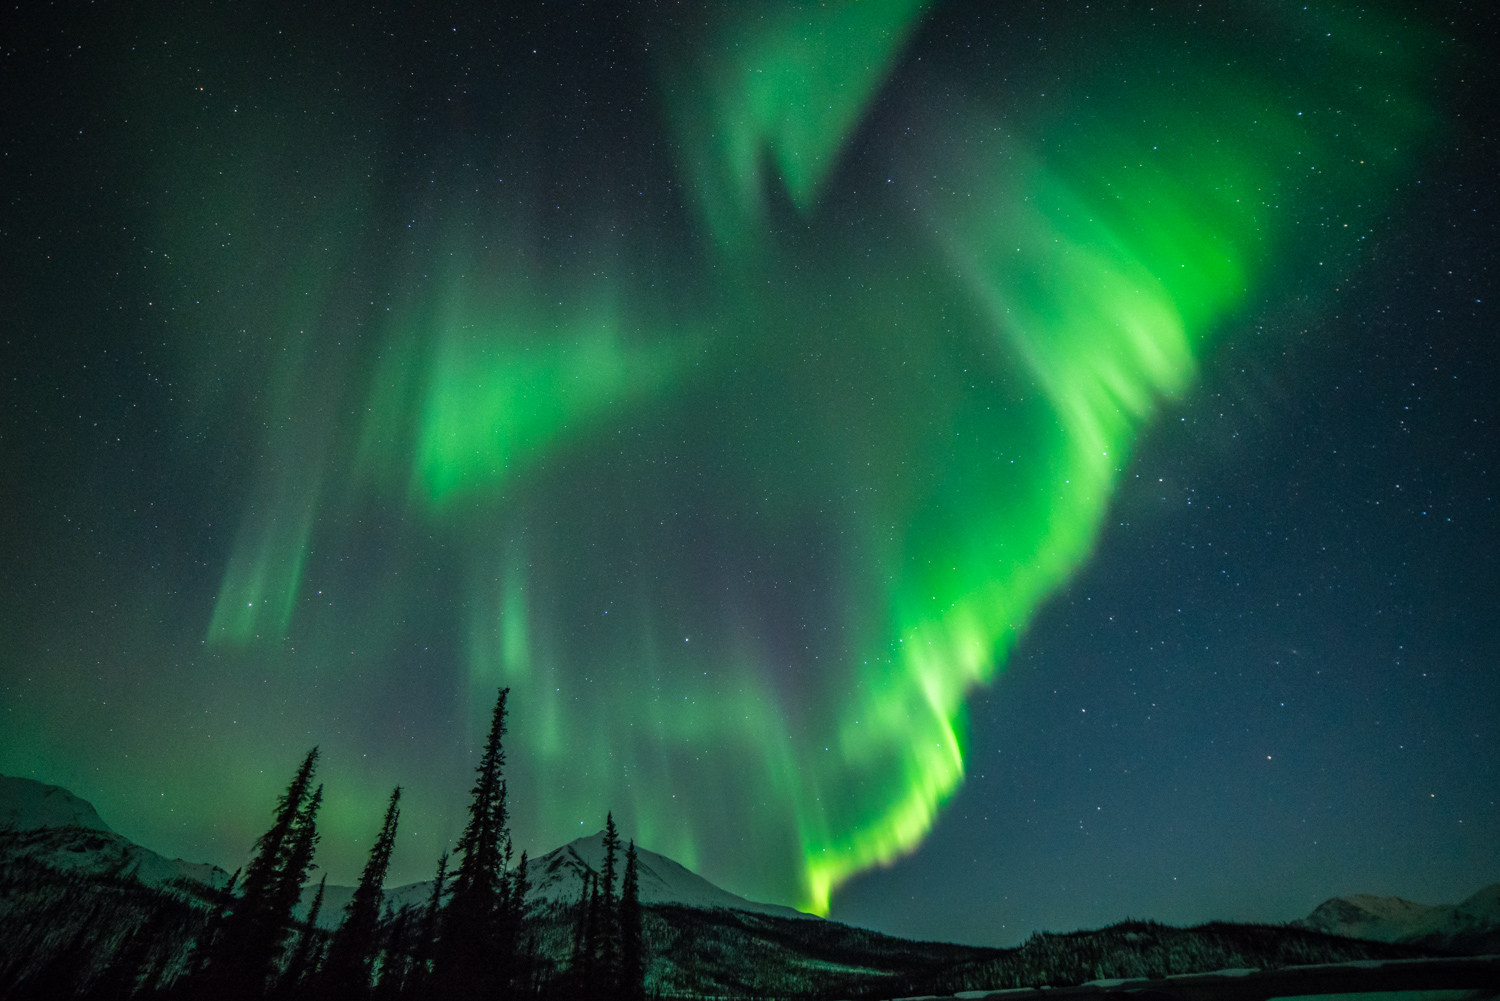 northern lights over a mountain scene - Five (More) Uncomfortable Truths About Photography